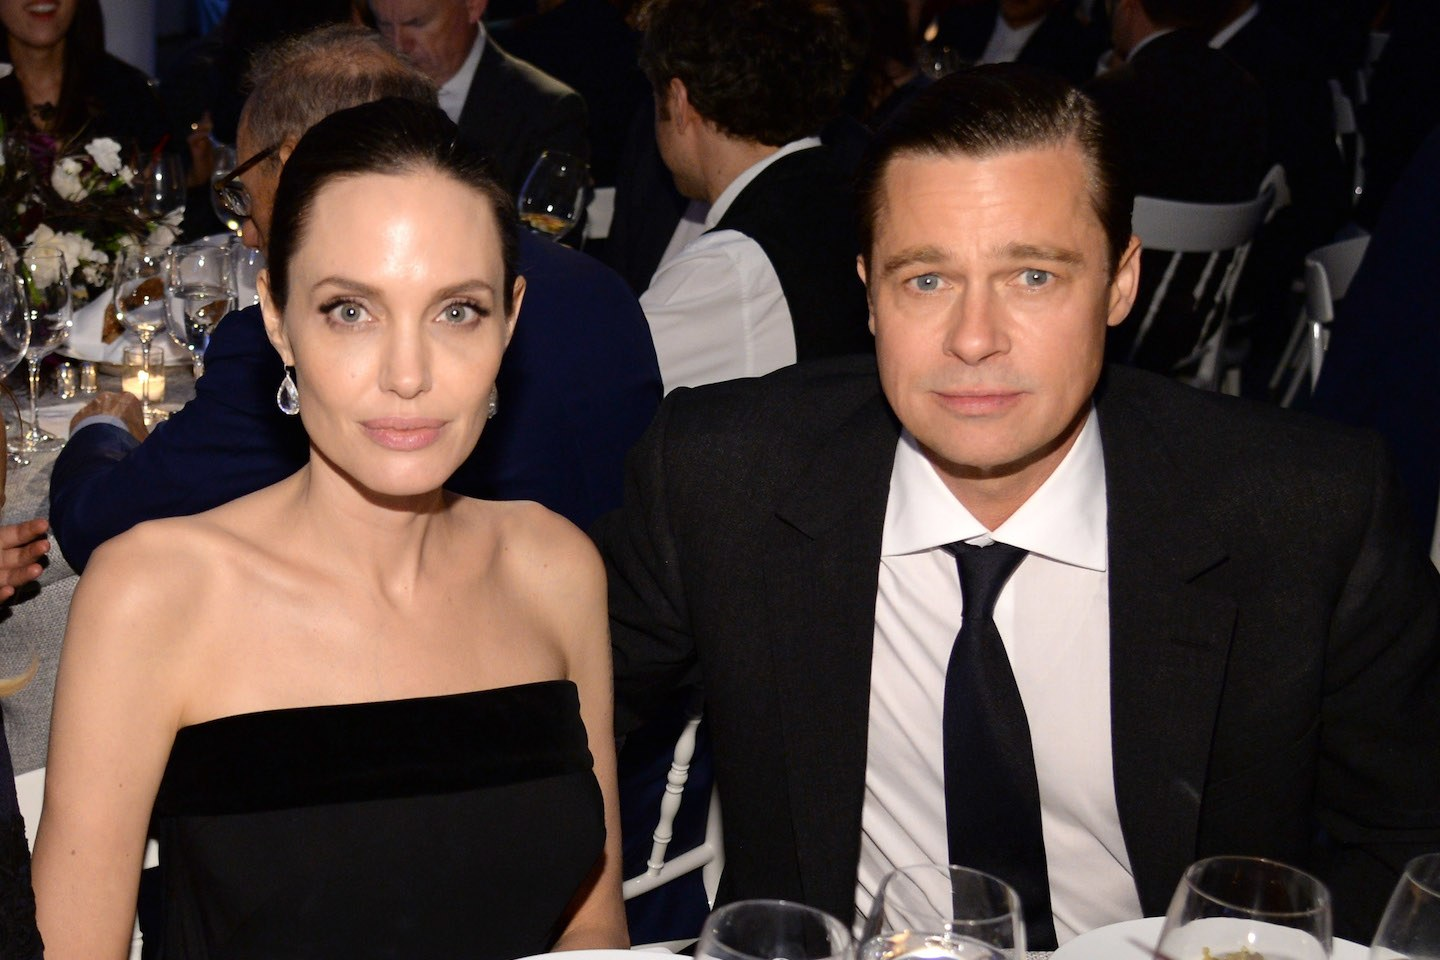 """angelina-jolie-and-brad-pitts-miraval-winery-announces-the-release-of-a-new-wine-despite-their-bitter-divorce"""